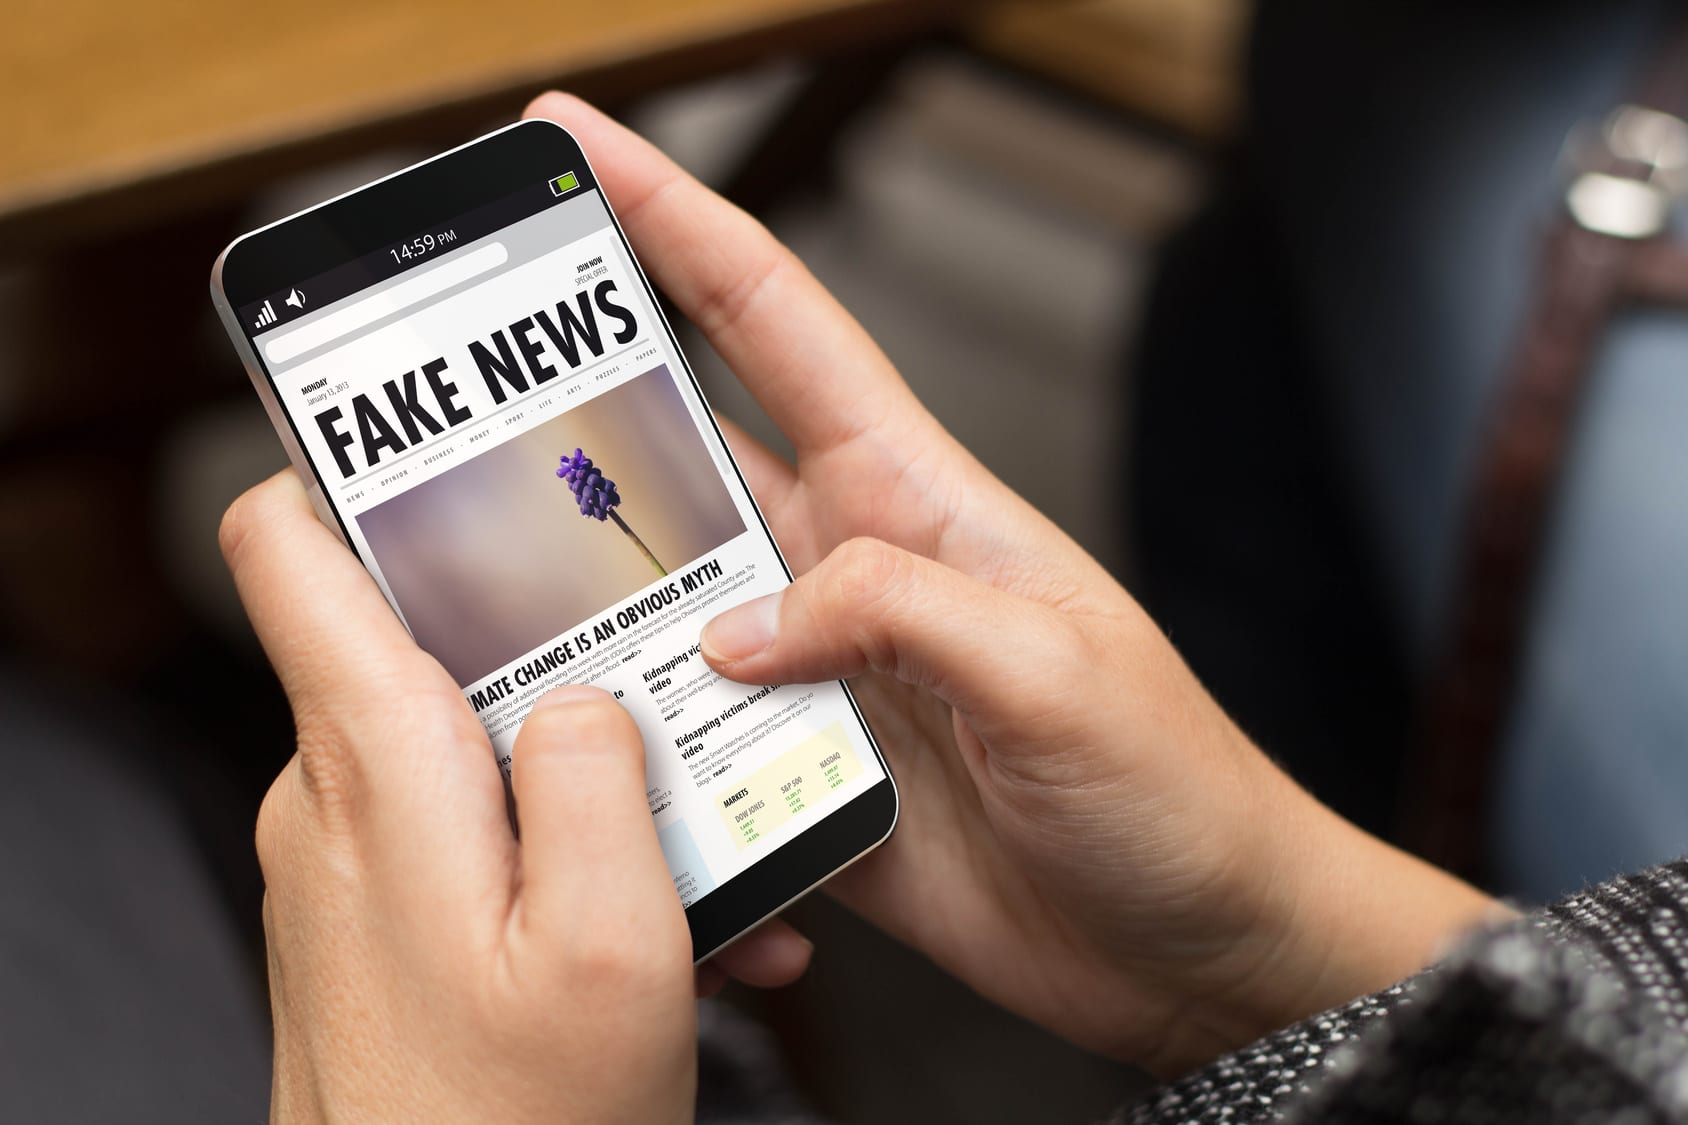 5 communication tips inspired by fake news